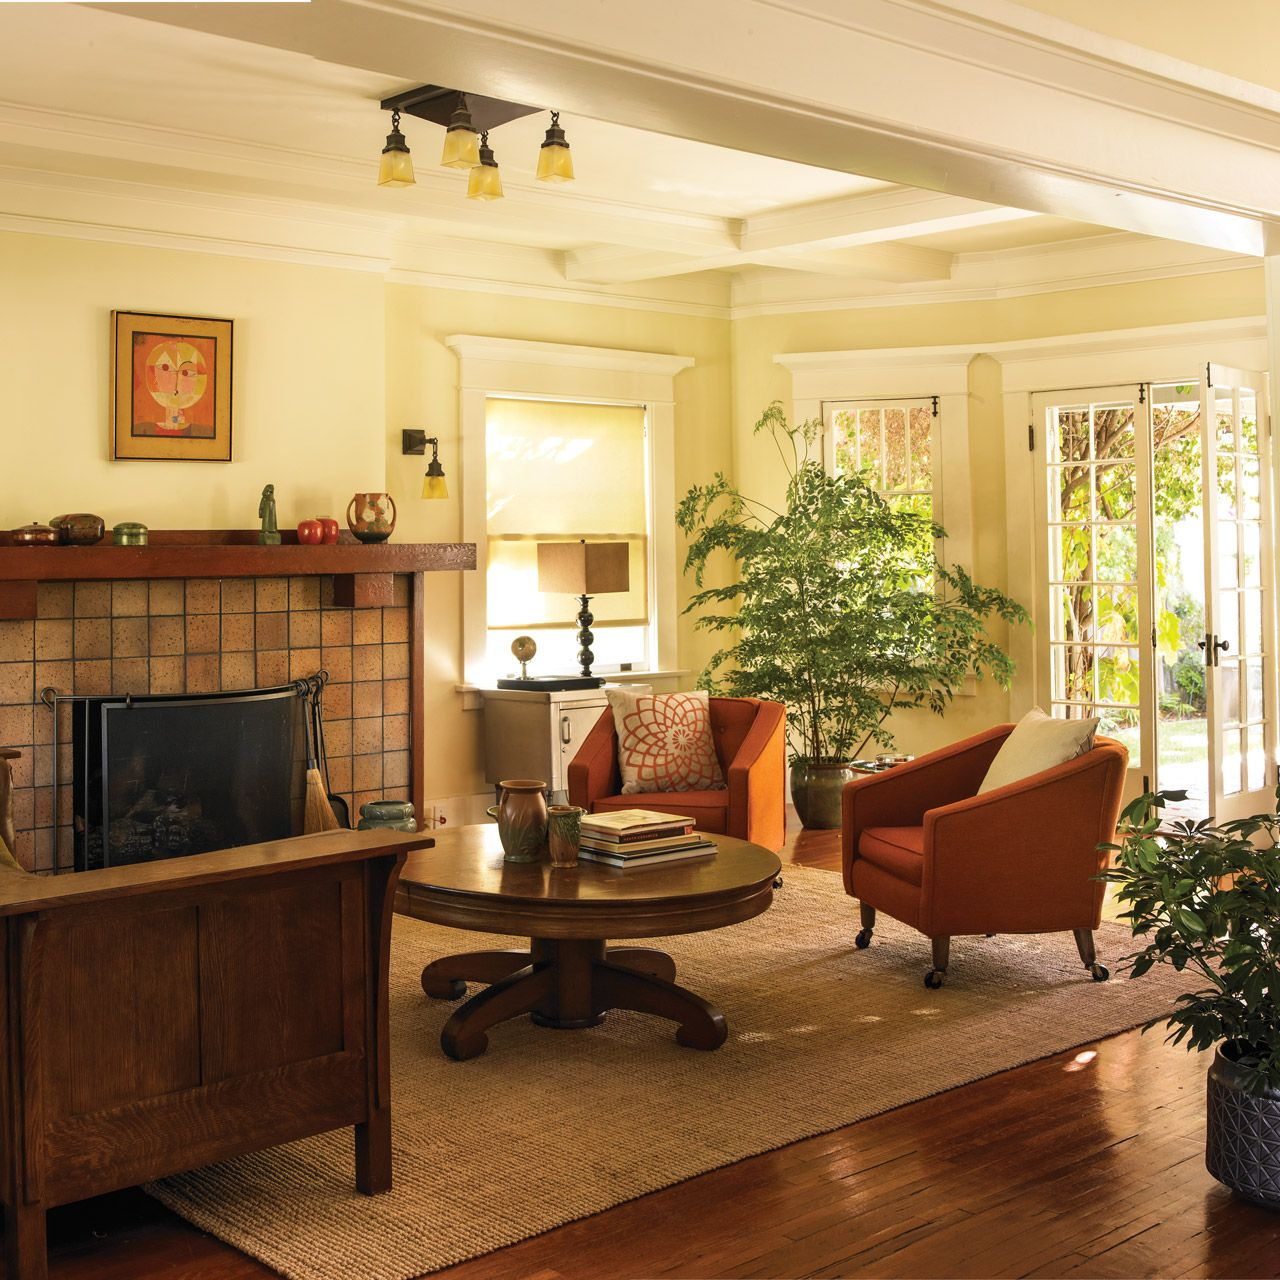 Dunn edwards paints paint colors walls golden west - Designer wall paints for living room ...